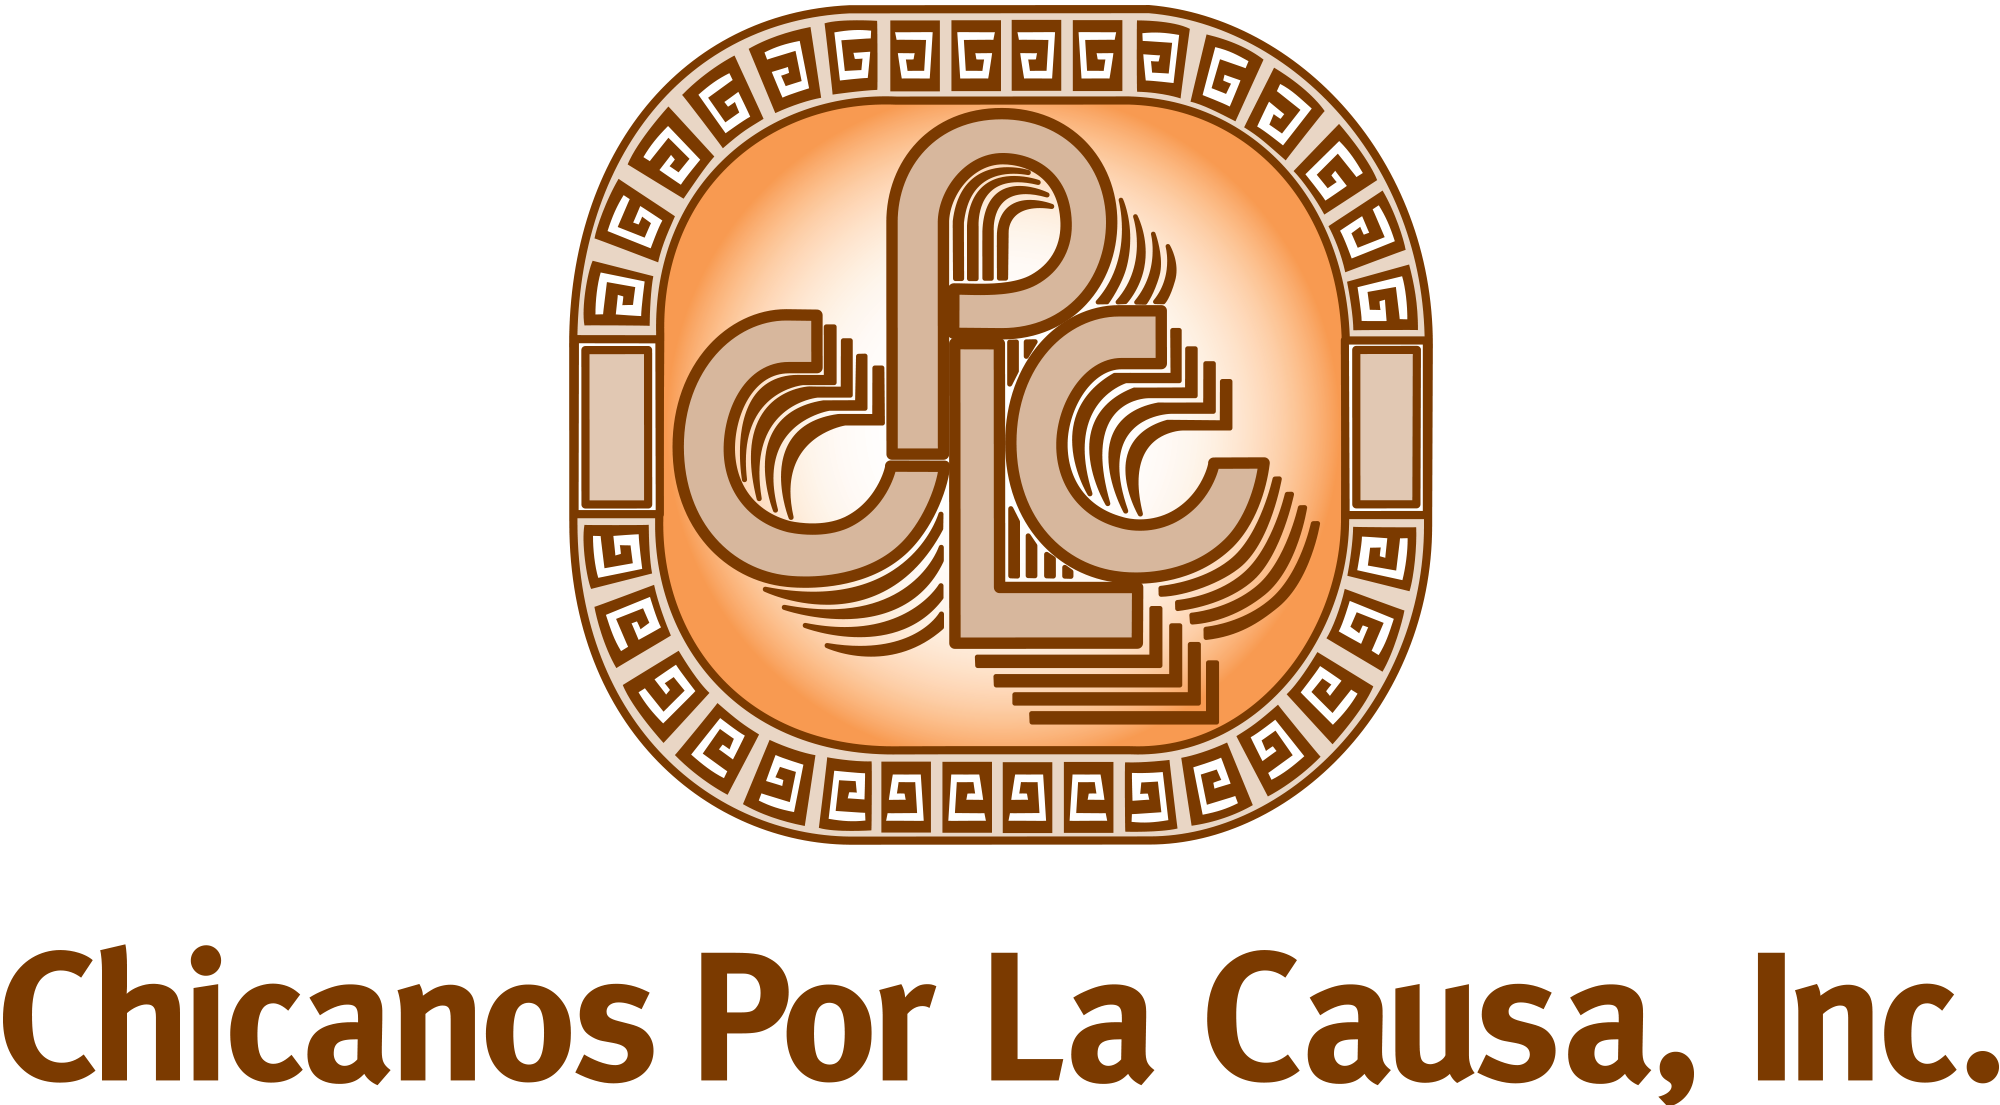 Chicanos Por La Causa, Inc.